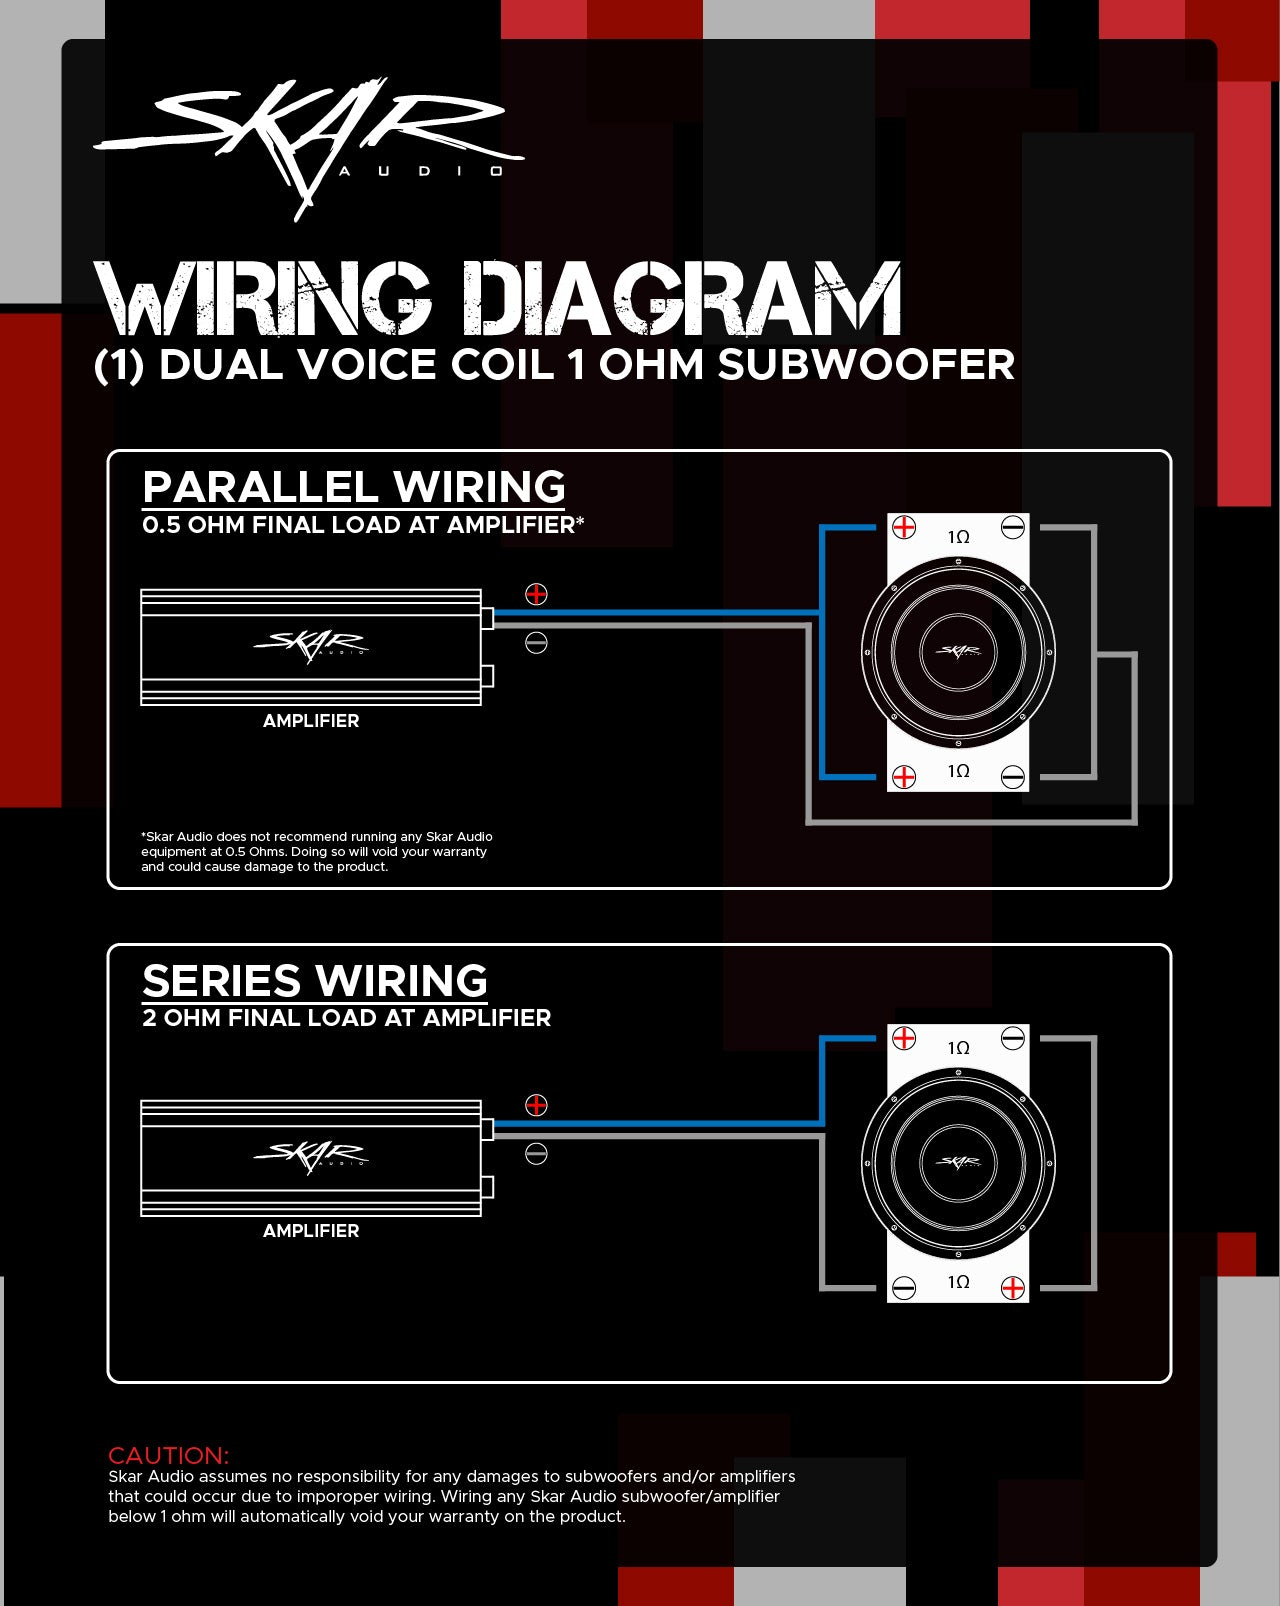 Dual Voice Coil Subwoofer Wiring Guides Skar Audio Knowledge Base Help Desk